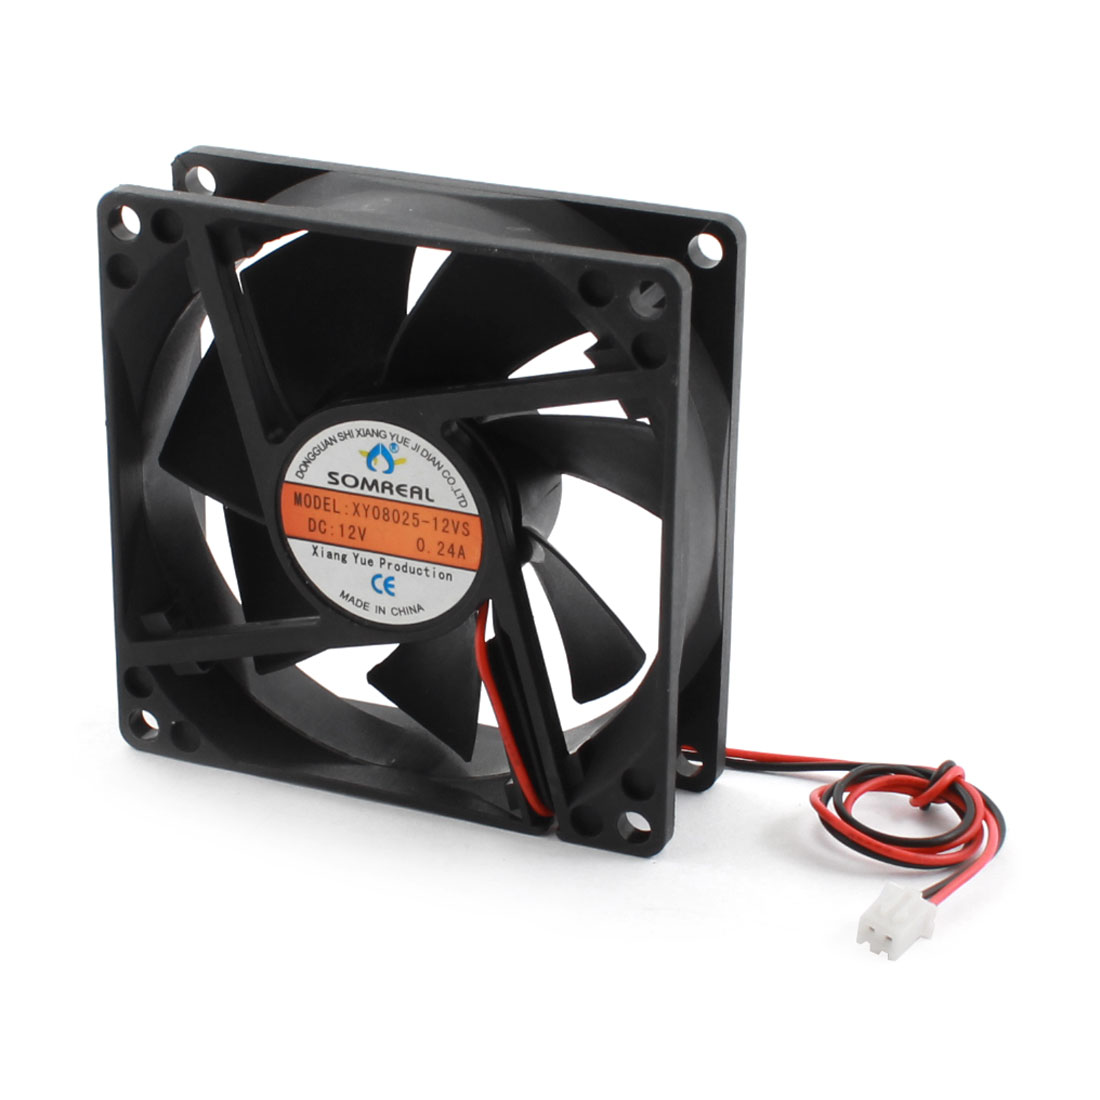 DC 12V 80mm x 25mm 2Pin JST-XH Connector Black Plastic Heat Dissipation Cooling Fan Cooler Heatsink for Computer Cases